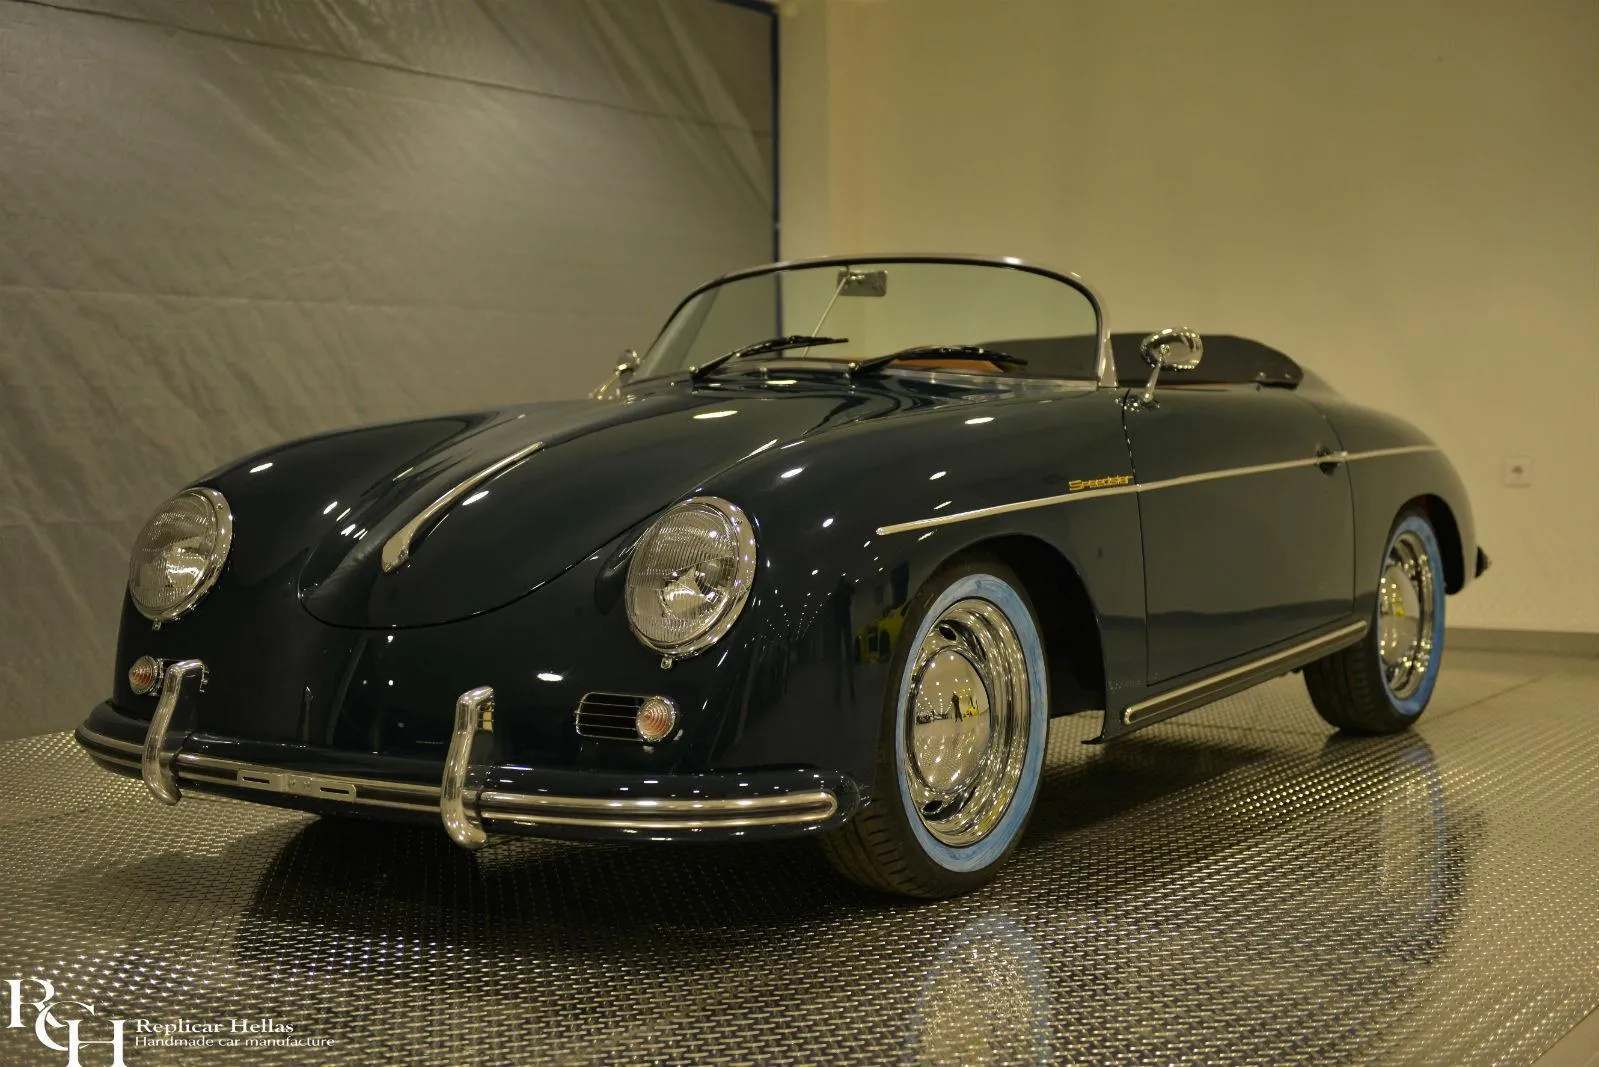 Classic Lhd Rch New 356 Speedster Replica Finally Avail For Sale